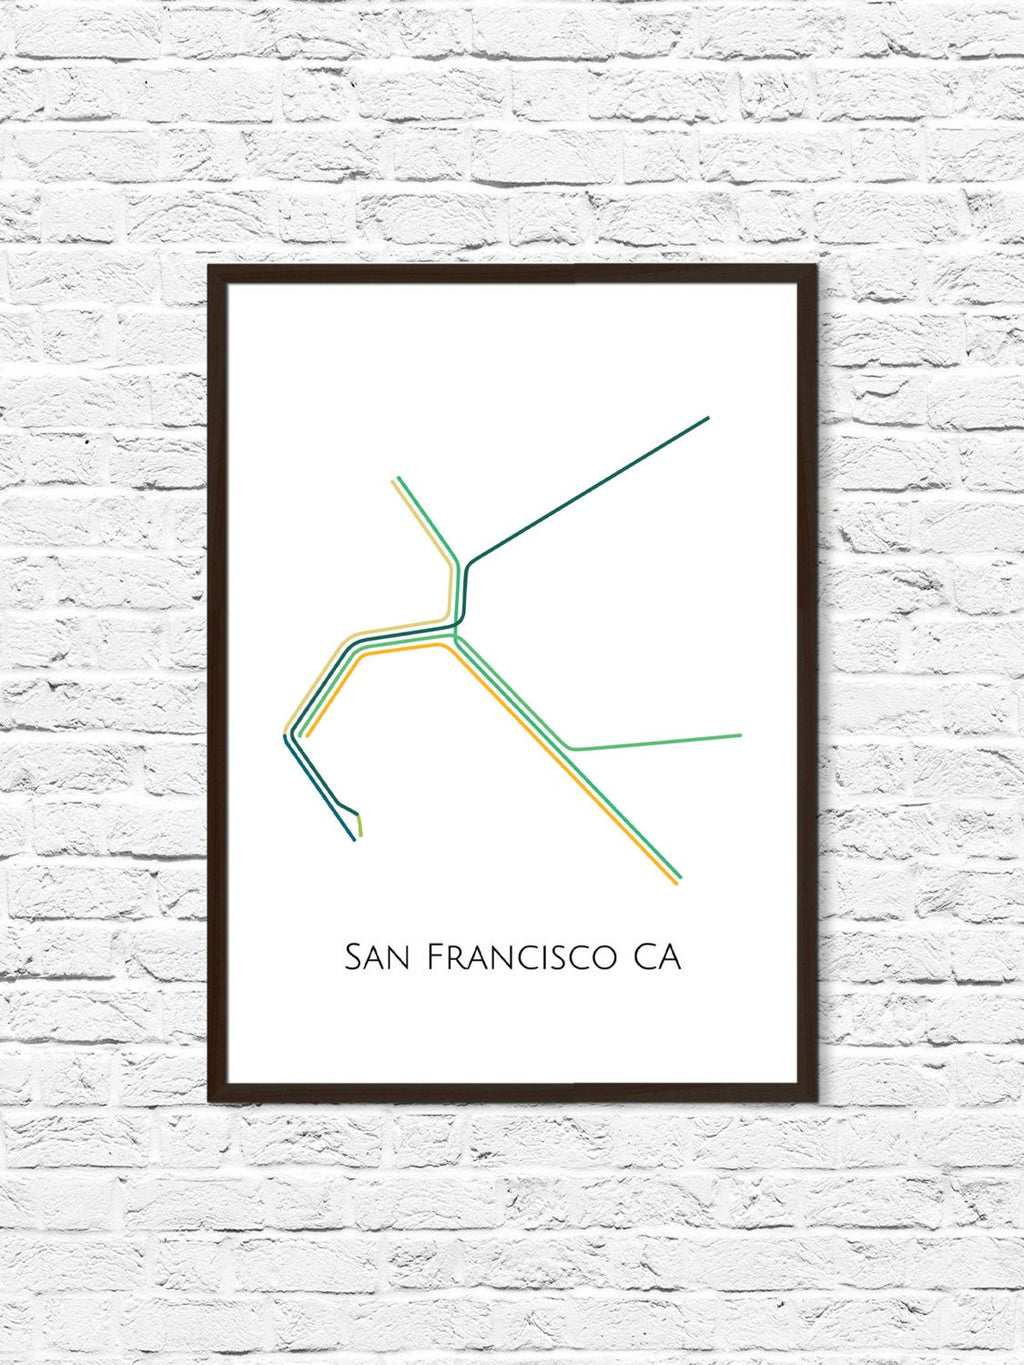 San Francisco California Metro Map - ParMar Media - 1